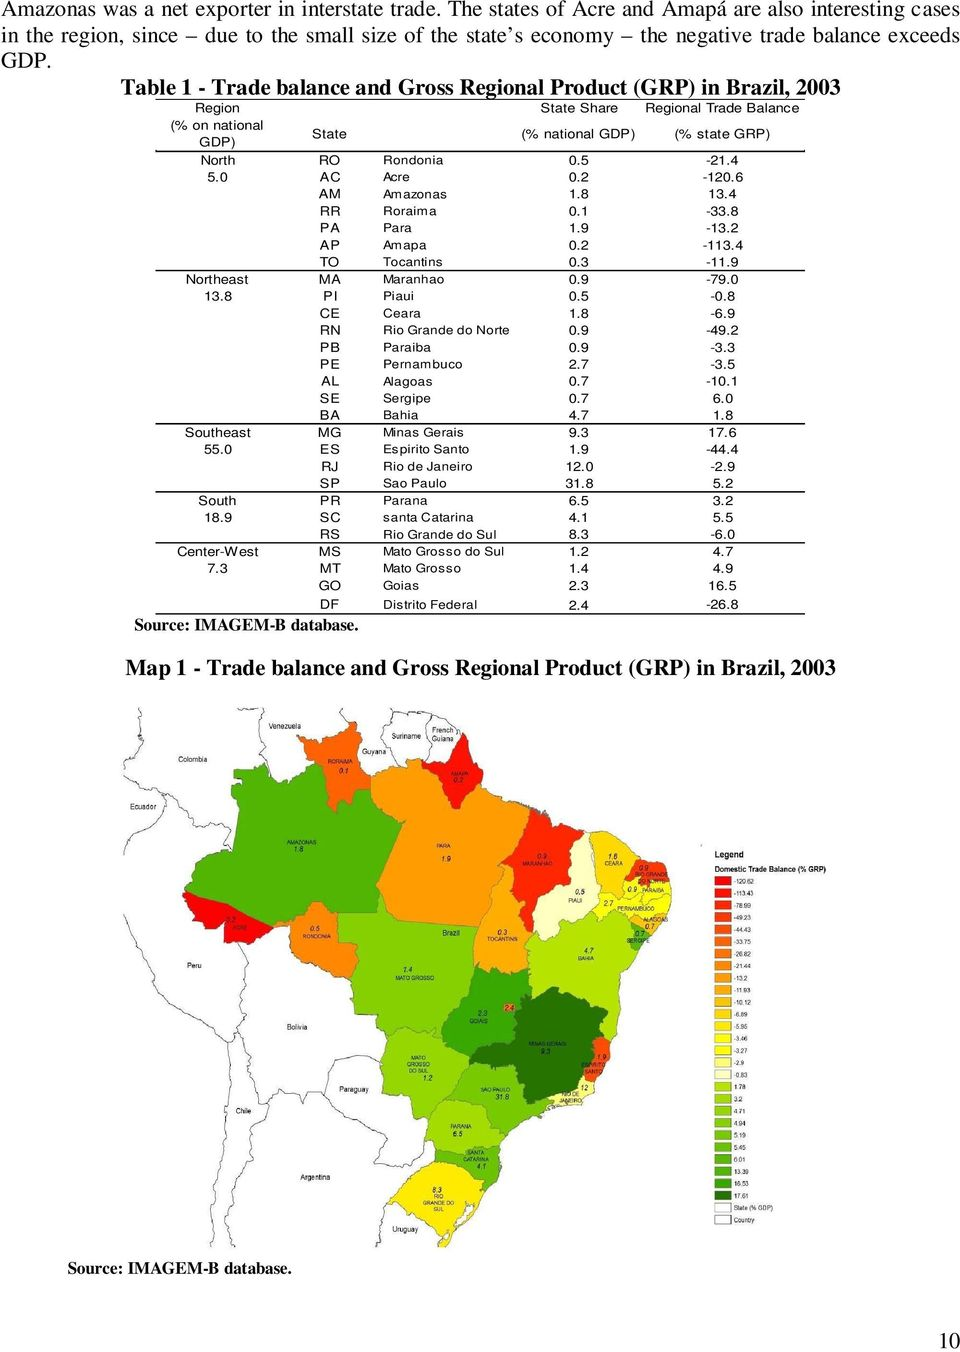 Table 1 - Trade balance and Gross Regional Product (GRP) in Brazil, 2003 Region State Share Regional Trade Balance (% on national GDP) State (% national GDP) (% state GRP) North RO Rondonia 0.5-21.